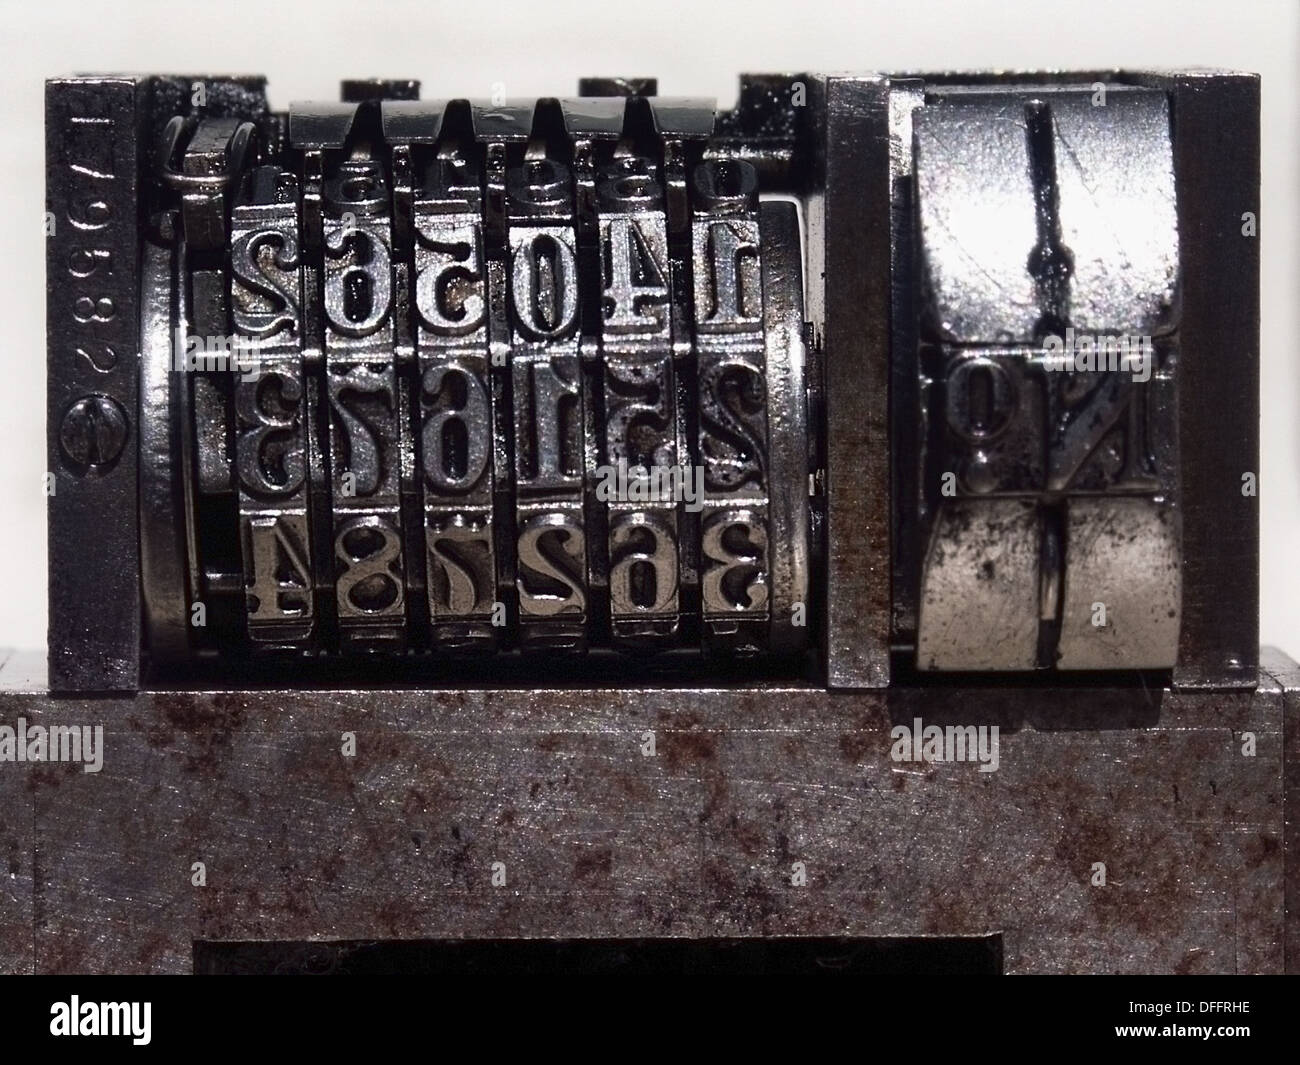 Meter, detail of typographical plate - Stock Image